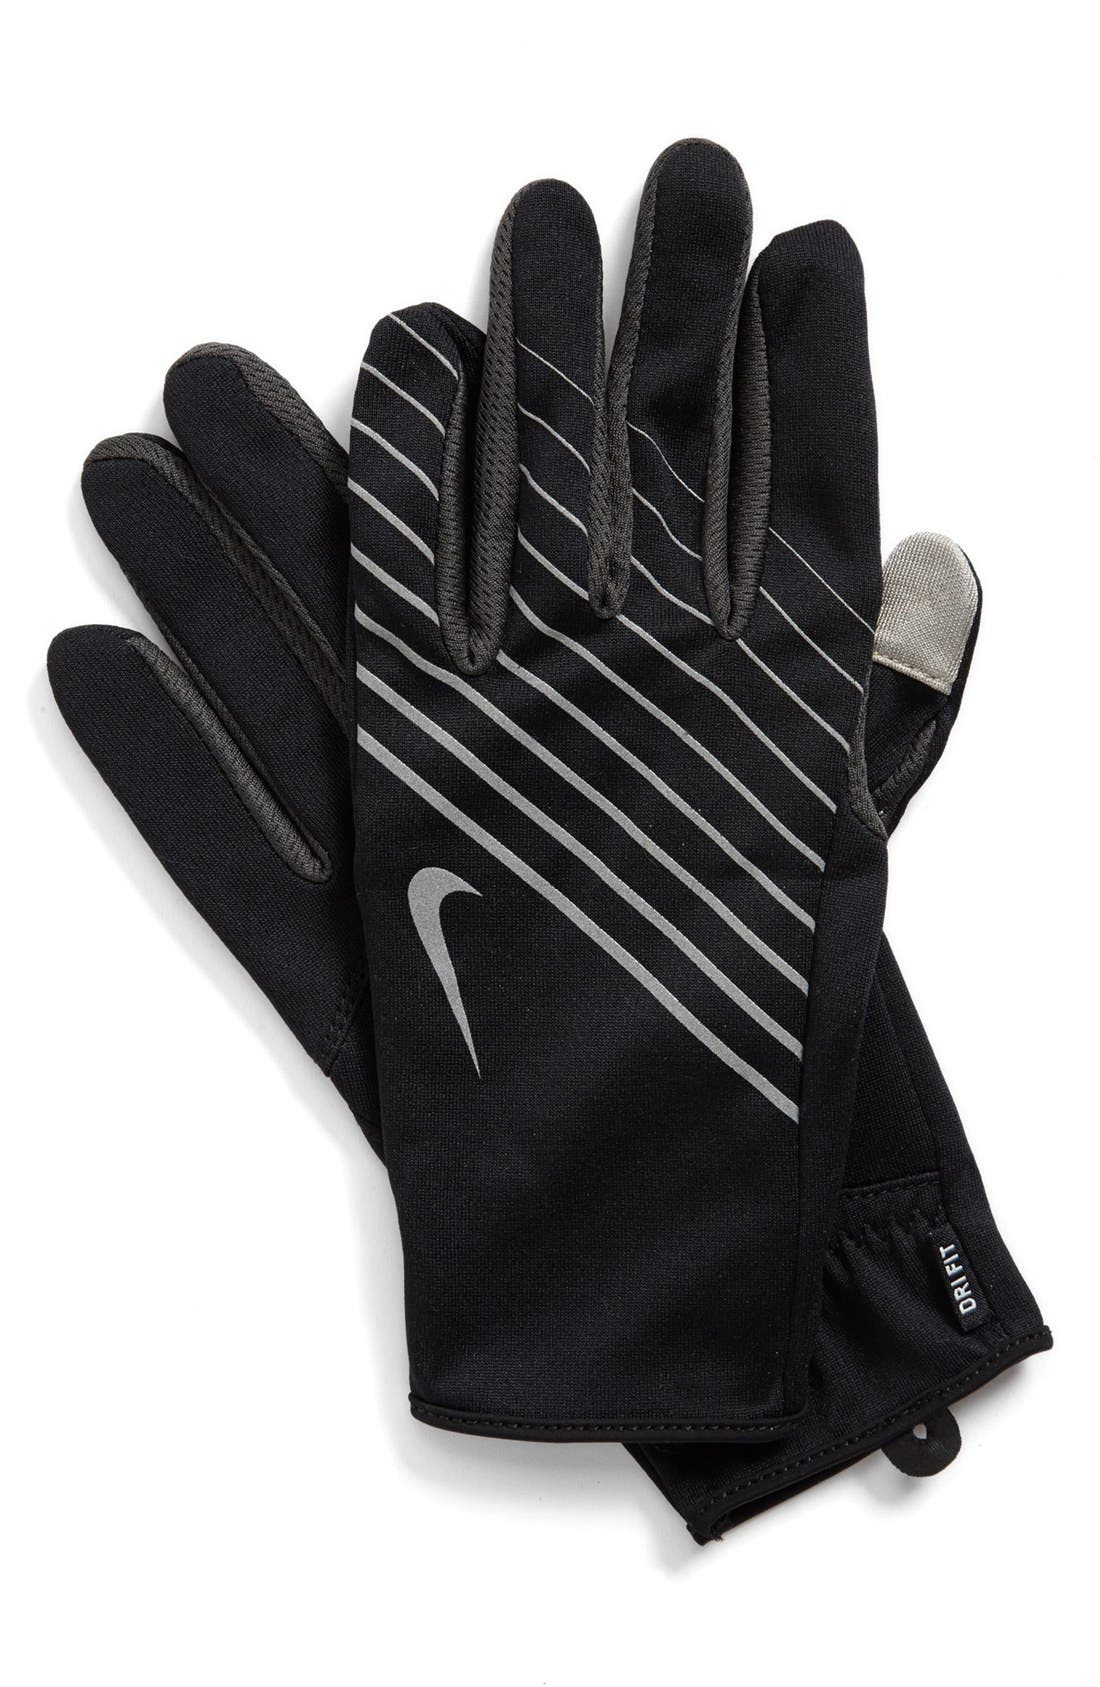 'Tech' Dri-FIT Running Gloves,                         Main,                         color, Black/ Anthracite